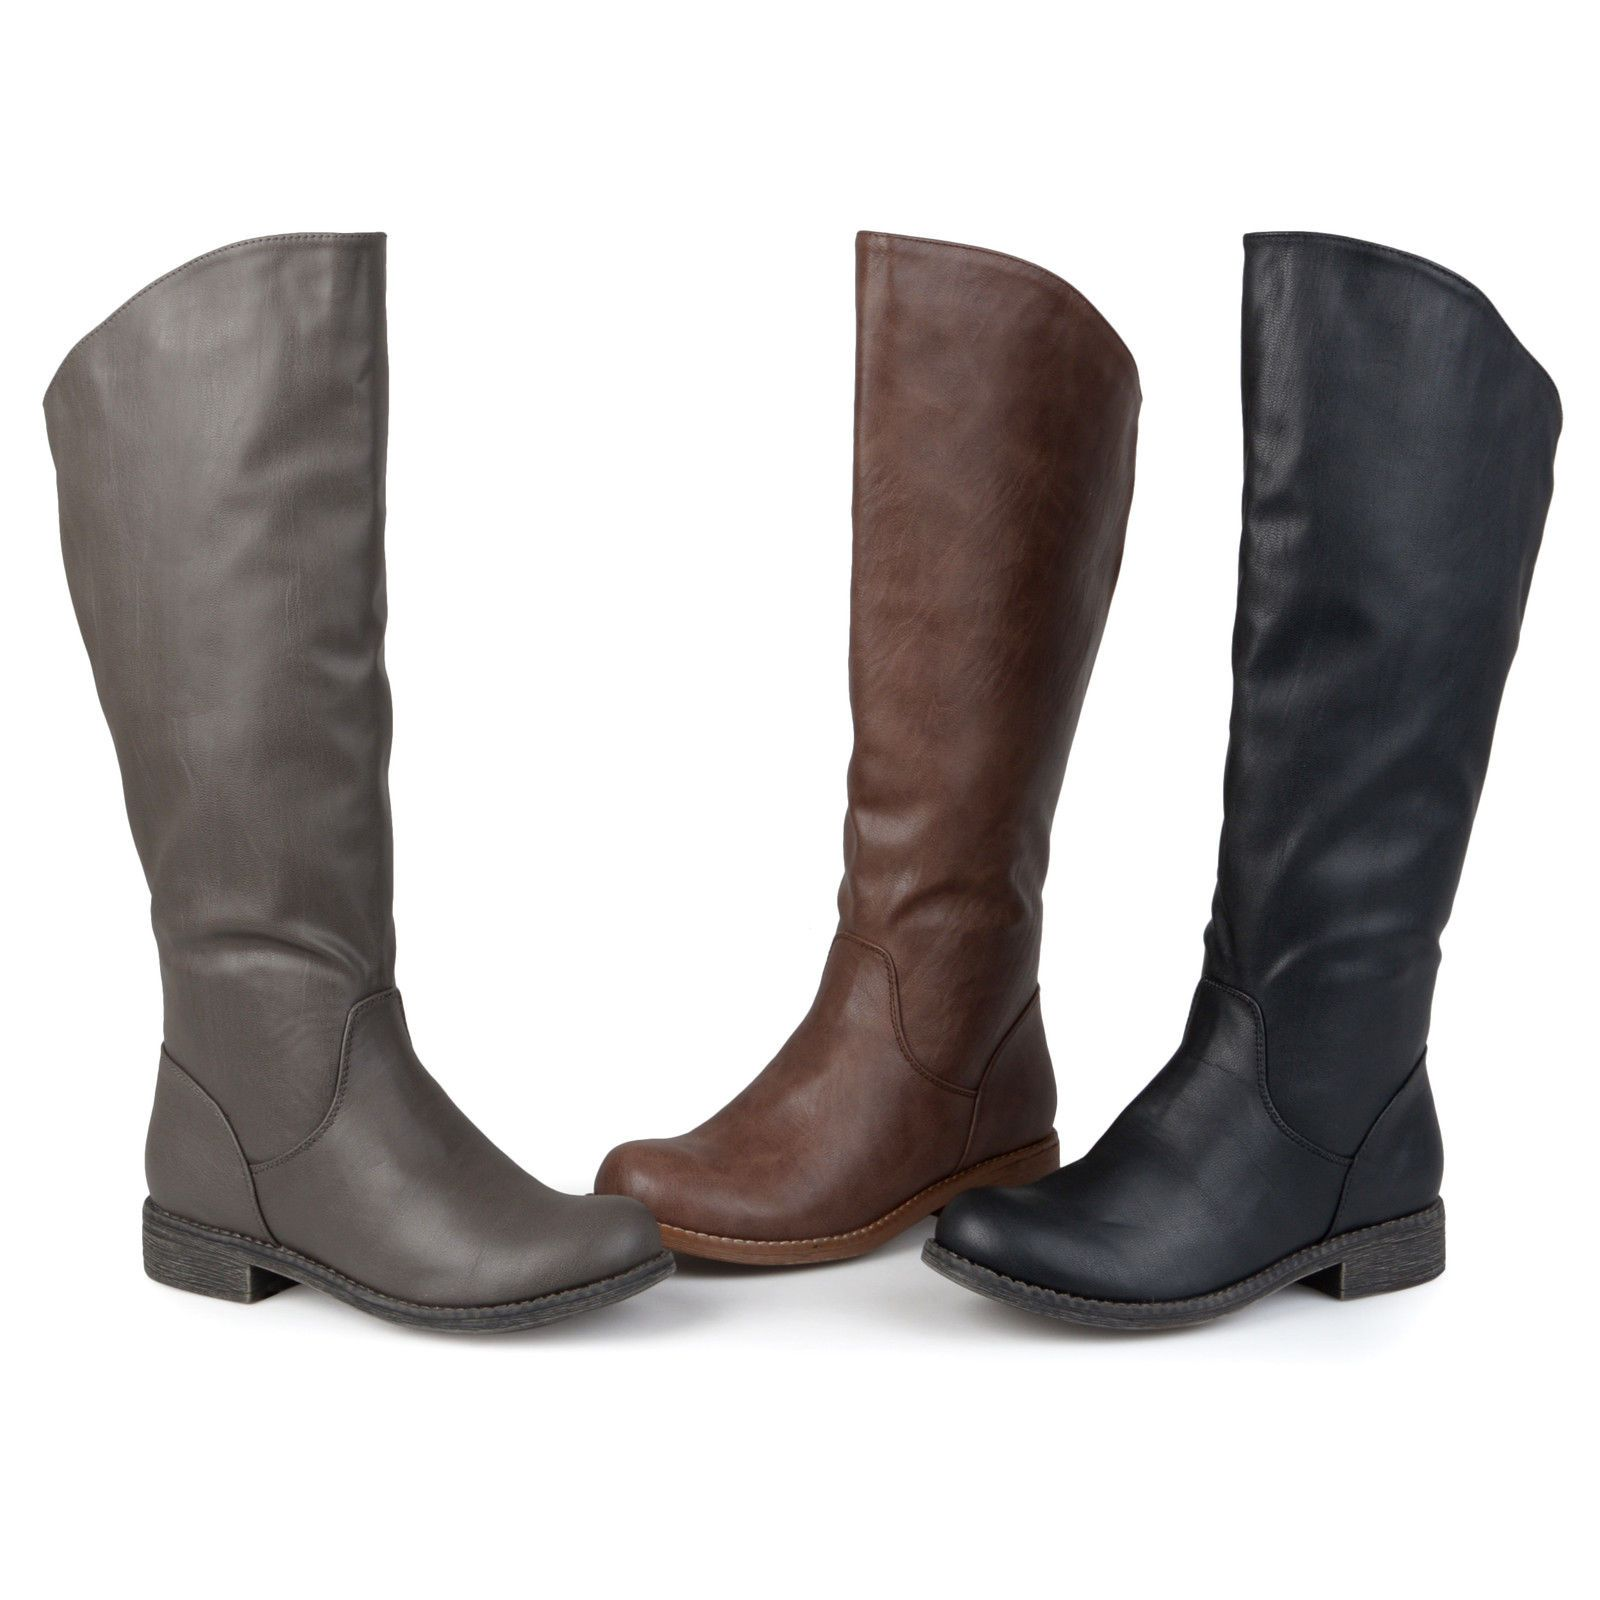 788cd07d2b93 Journee Collection Womens Wide Calf Knee High Riding Boots New ...